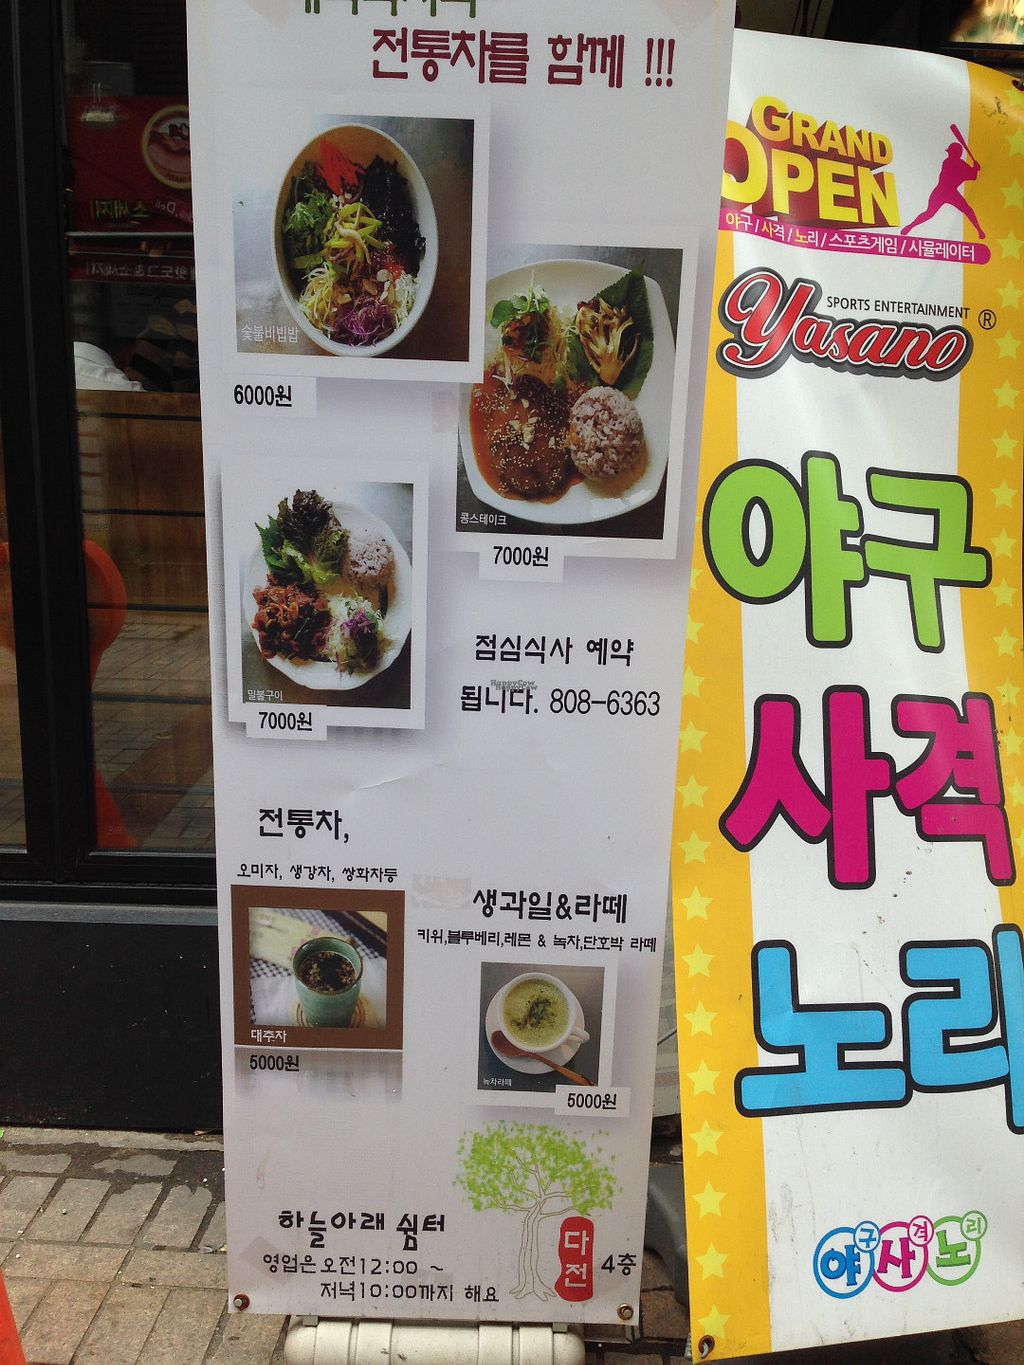 "Photo of Dajeon Cafe  by <a href=""/members/profile/Stevie"">Stevie</a> <br/>Street sign <br/> September 16, 2016  - <a href='/contact/abuse/image/51276/176084'>Report</a>"